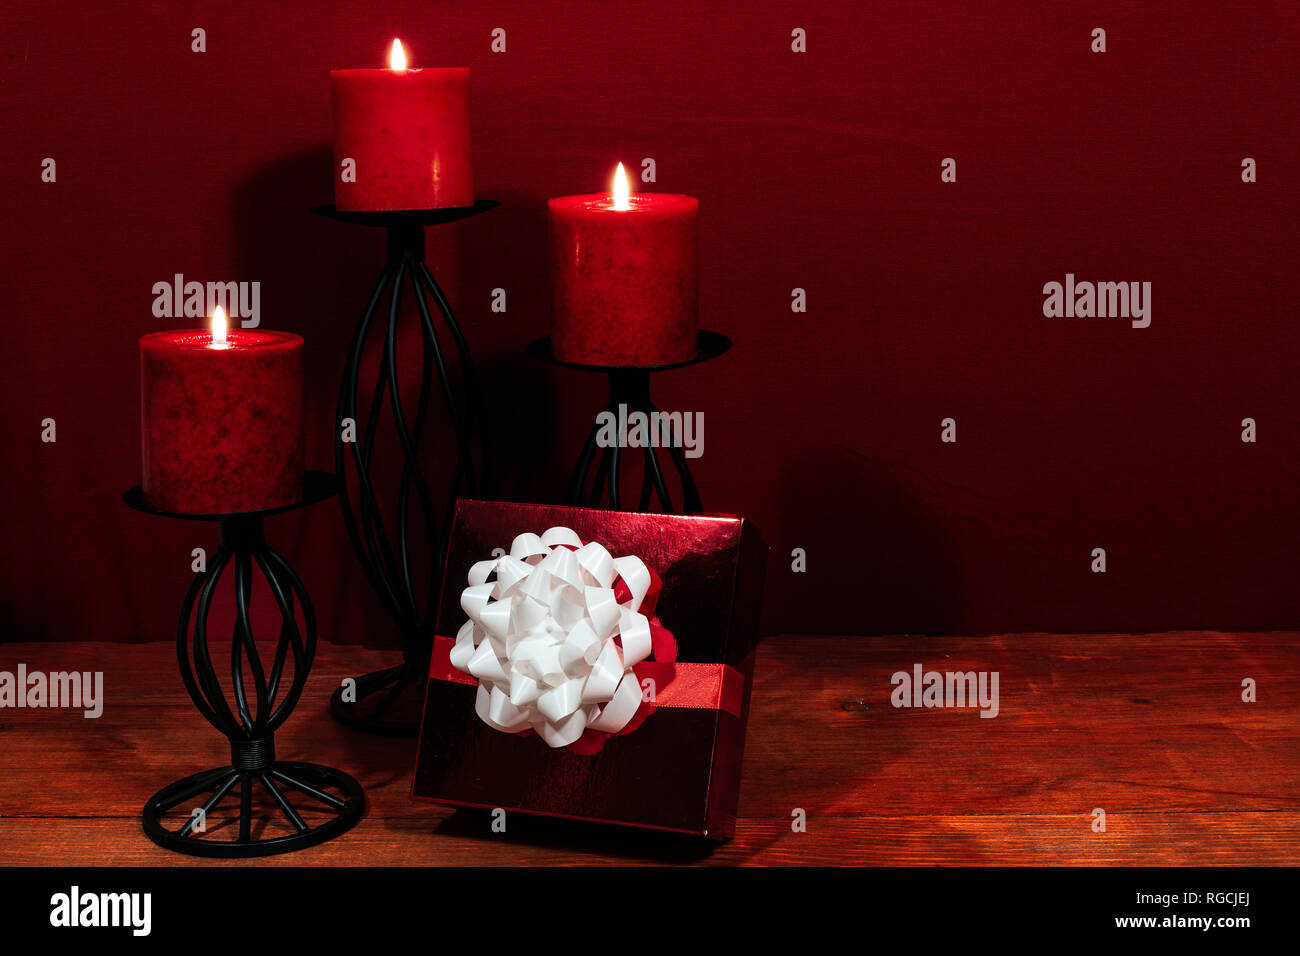 Three red candles in metal holders and red rose, present with white bow on wooden table. Stock Photo